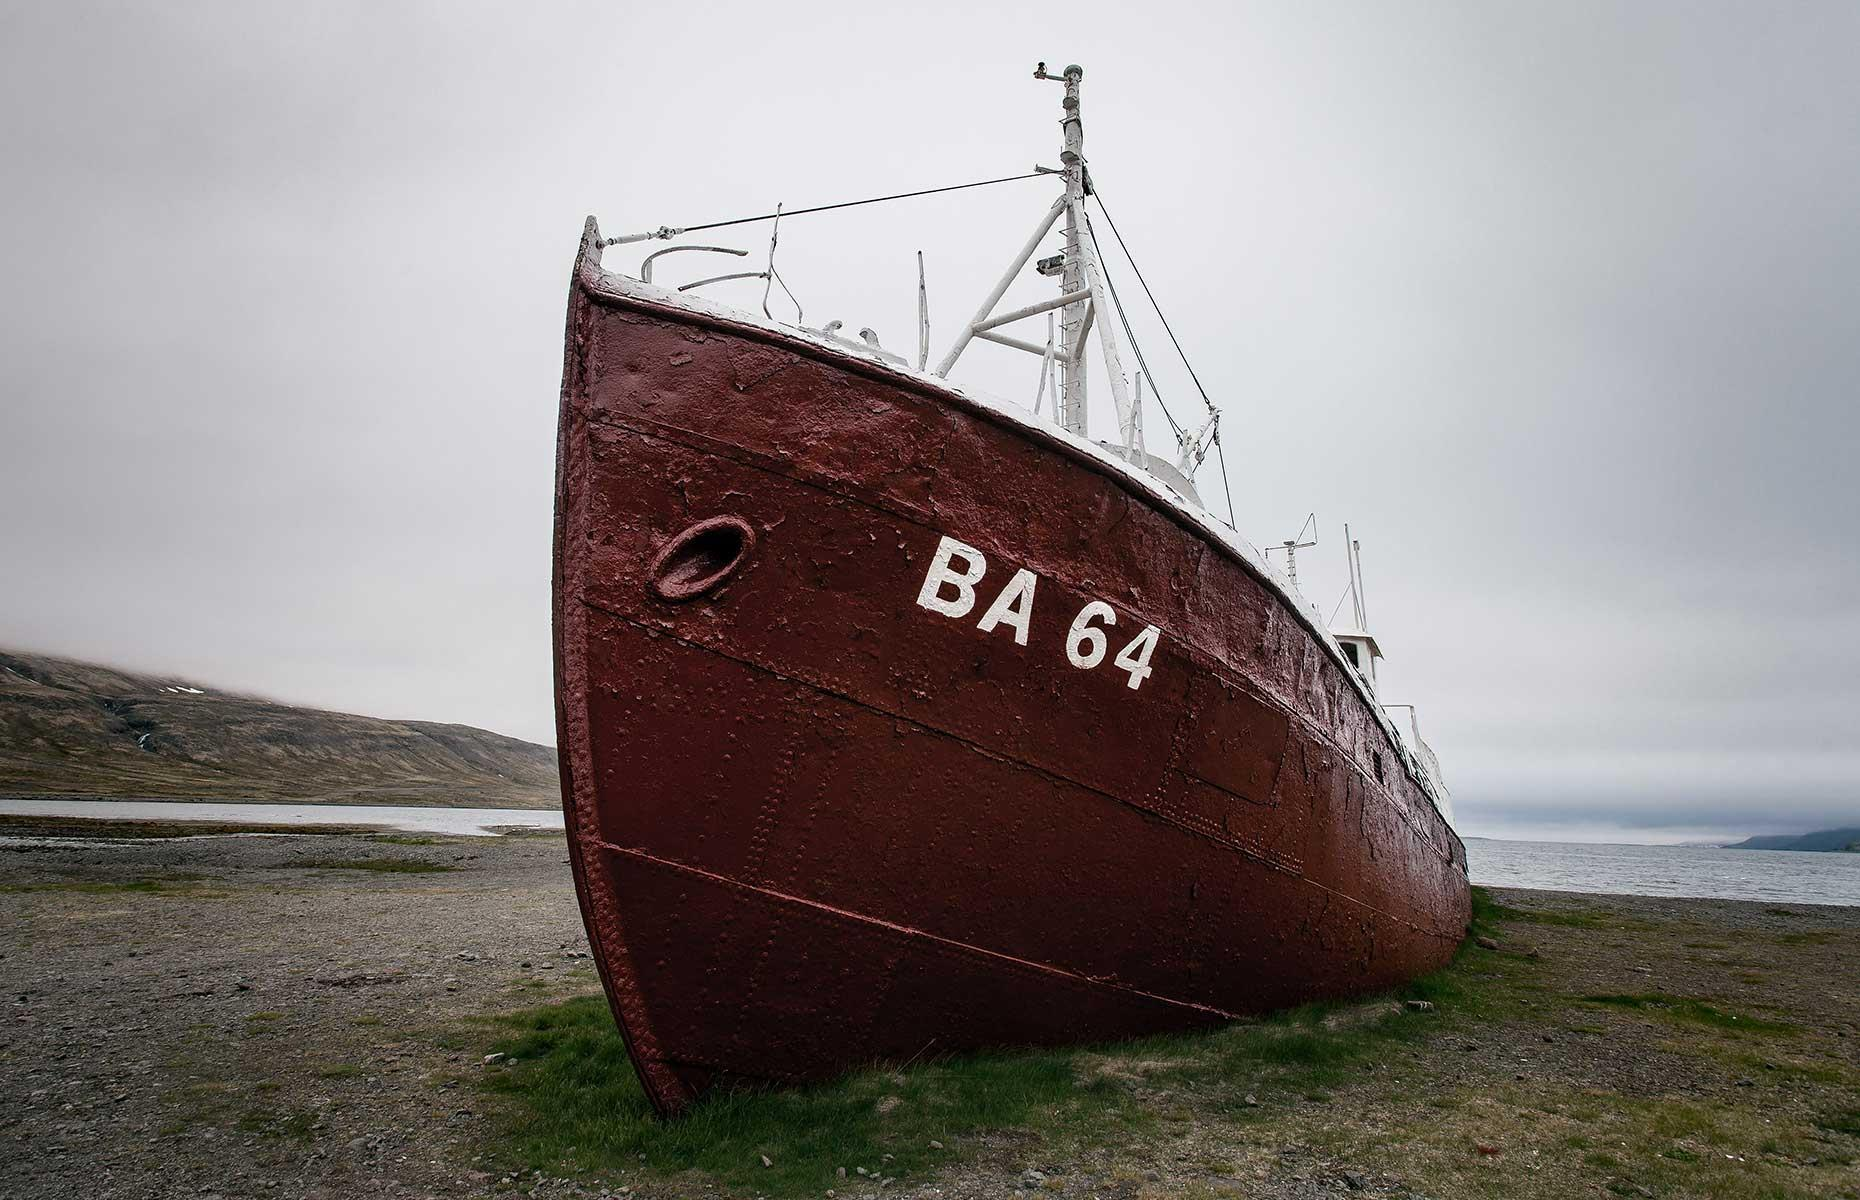 Slide 31 of 35: The ship has been out of service since 1981 and instead of being scrapped it was run aground in Skápadalur Valley – here it has remained ever since, drawing photographers keen to capture its beauty.